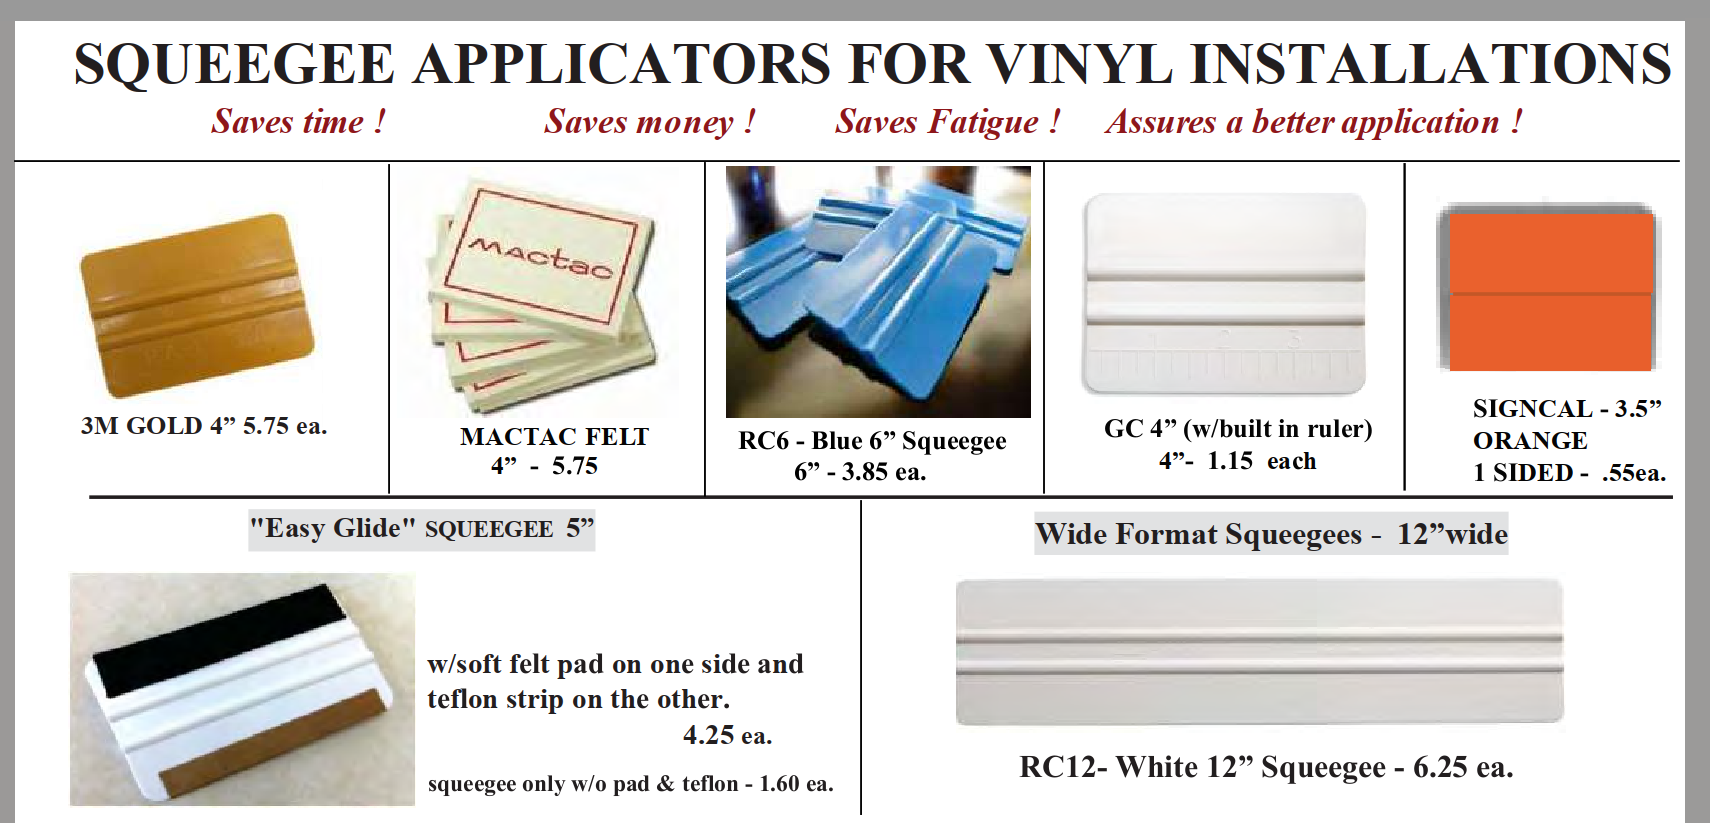 squeegee applicator page 1 - Squeegees for Vinyl Application